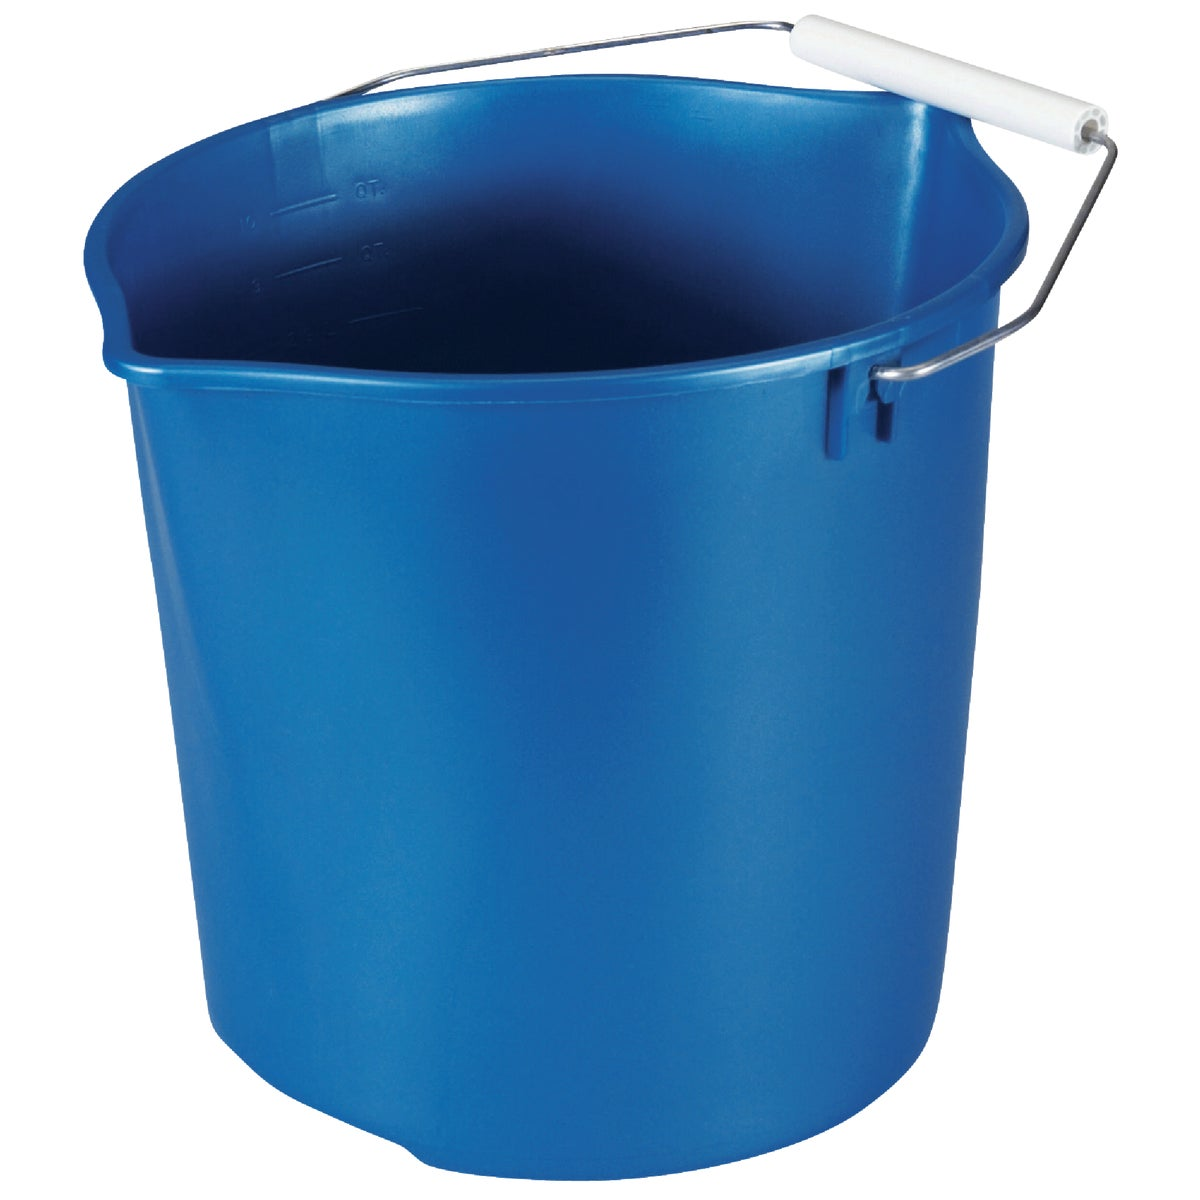 11QT BLUE BUCKET - FG2963TPROYBL by Rubbermaid Home